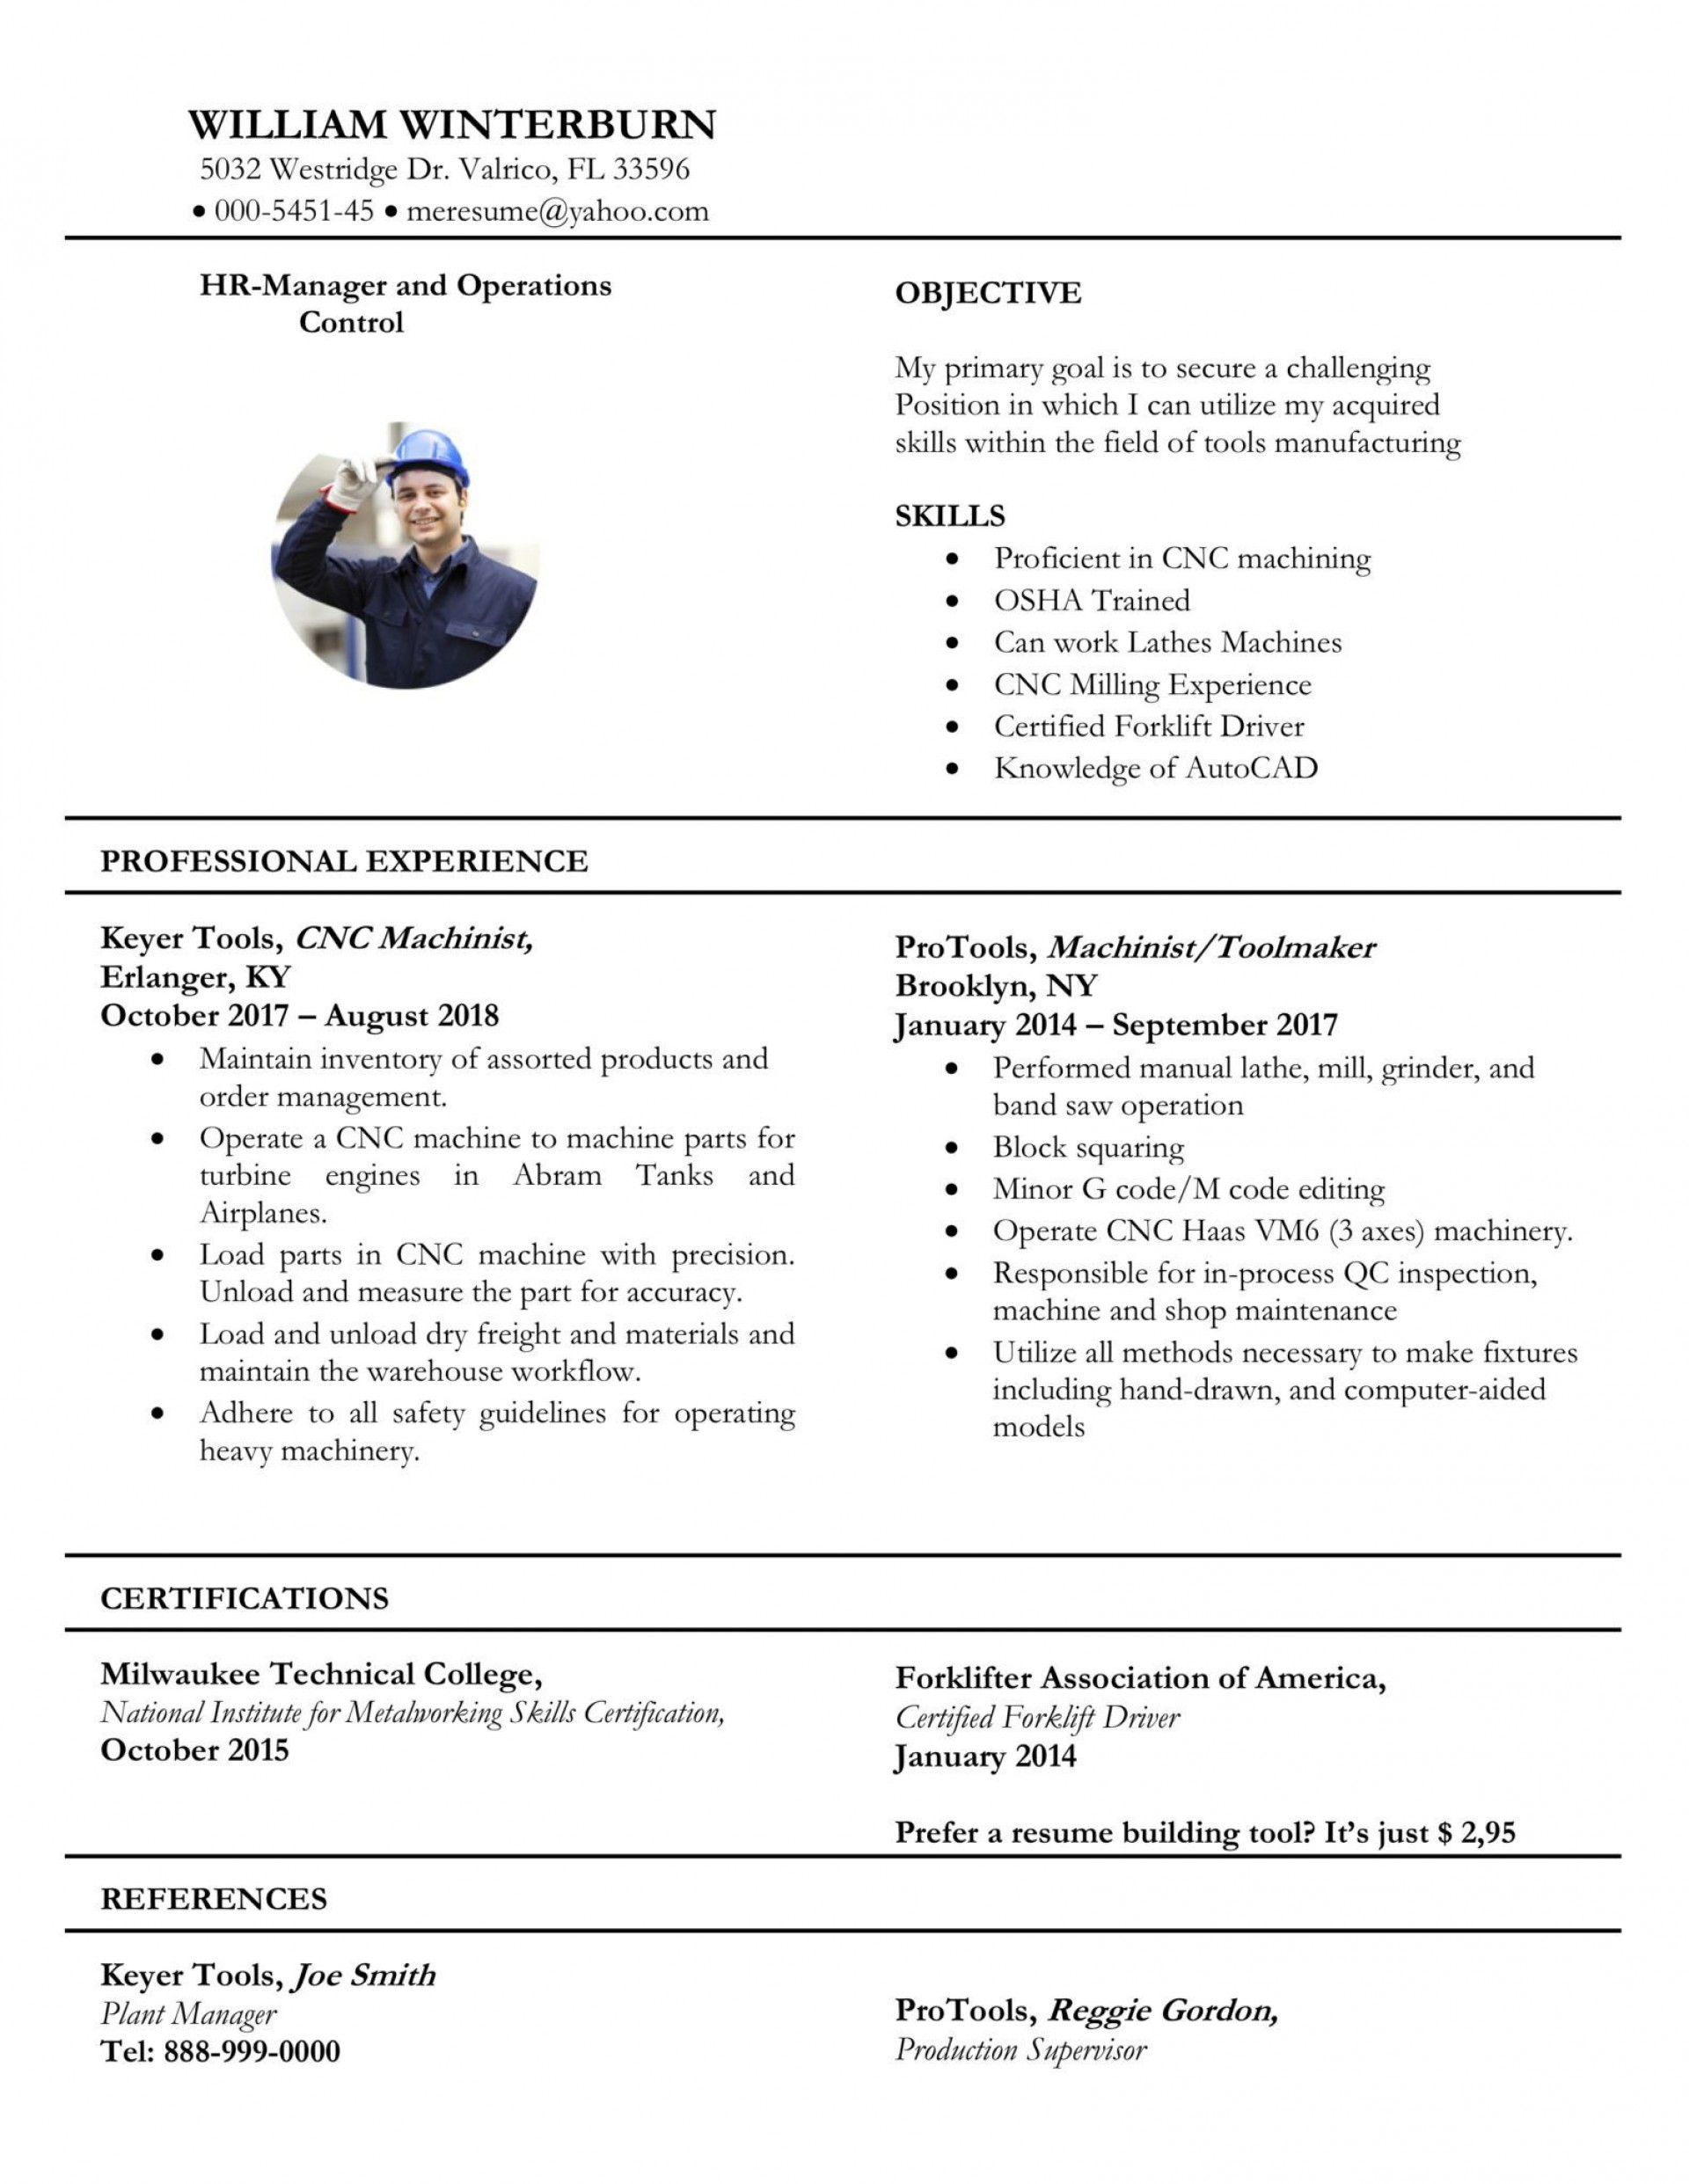 007 Magnificent Resume Template Word 2003 Free Download High Resolution  Downloads1920